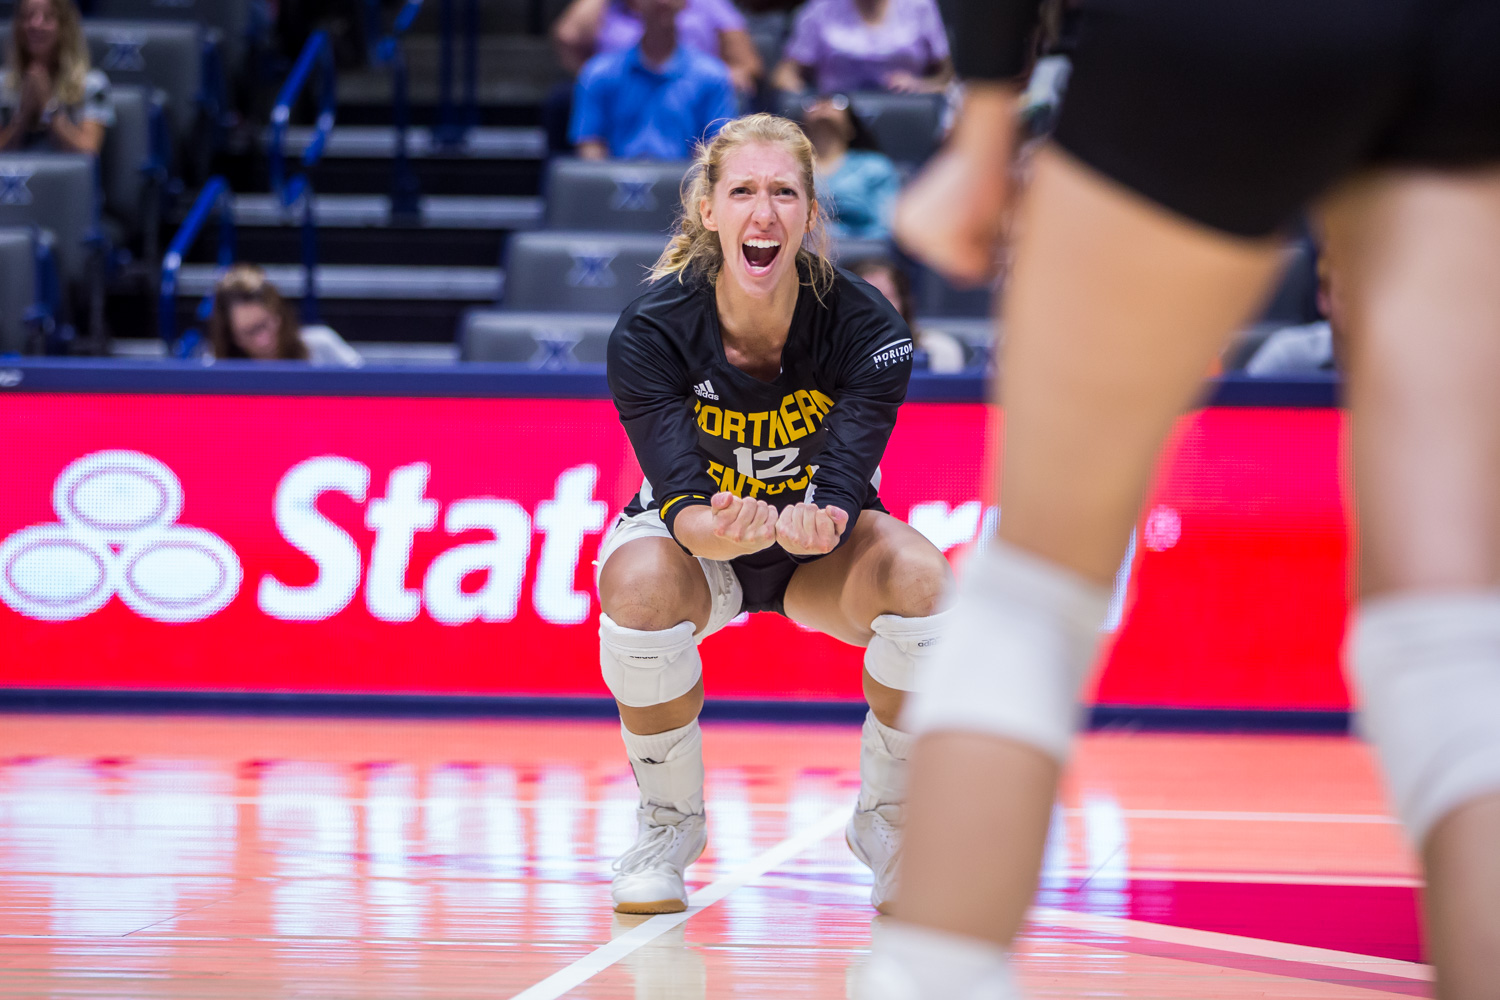 Laura+Crawford+%2812%29+cheers+after+a+point+for+the+Norse+during+the+game+against+Xavier.+The+Norse+won+3+of+4+sets+on+the+game+and+defeated+Xavier.